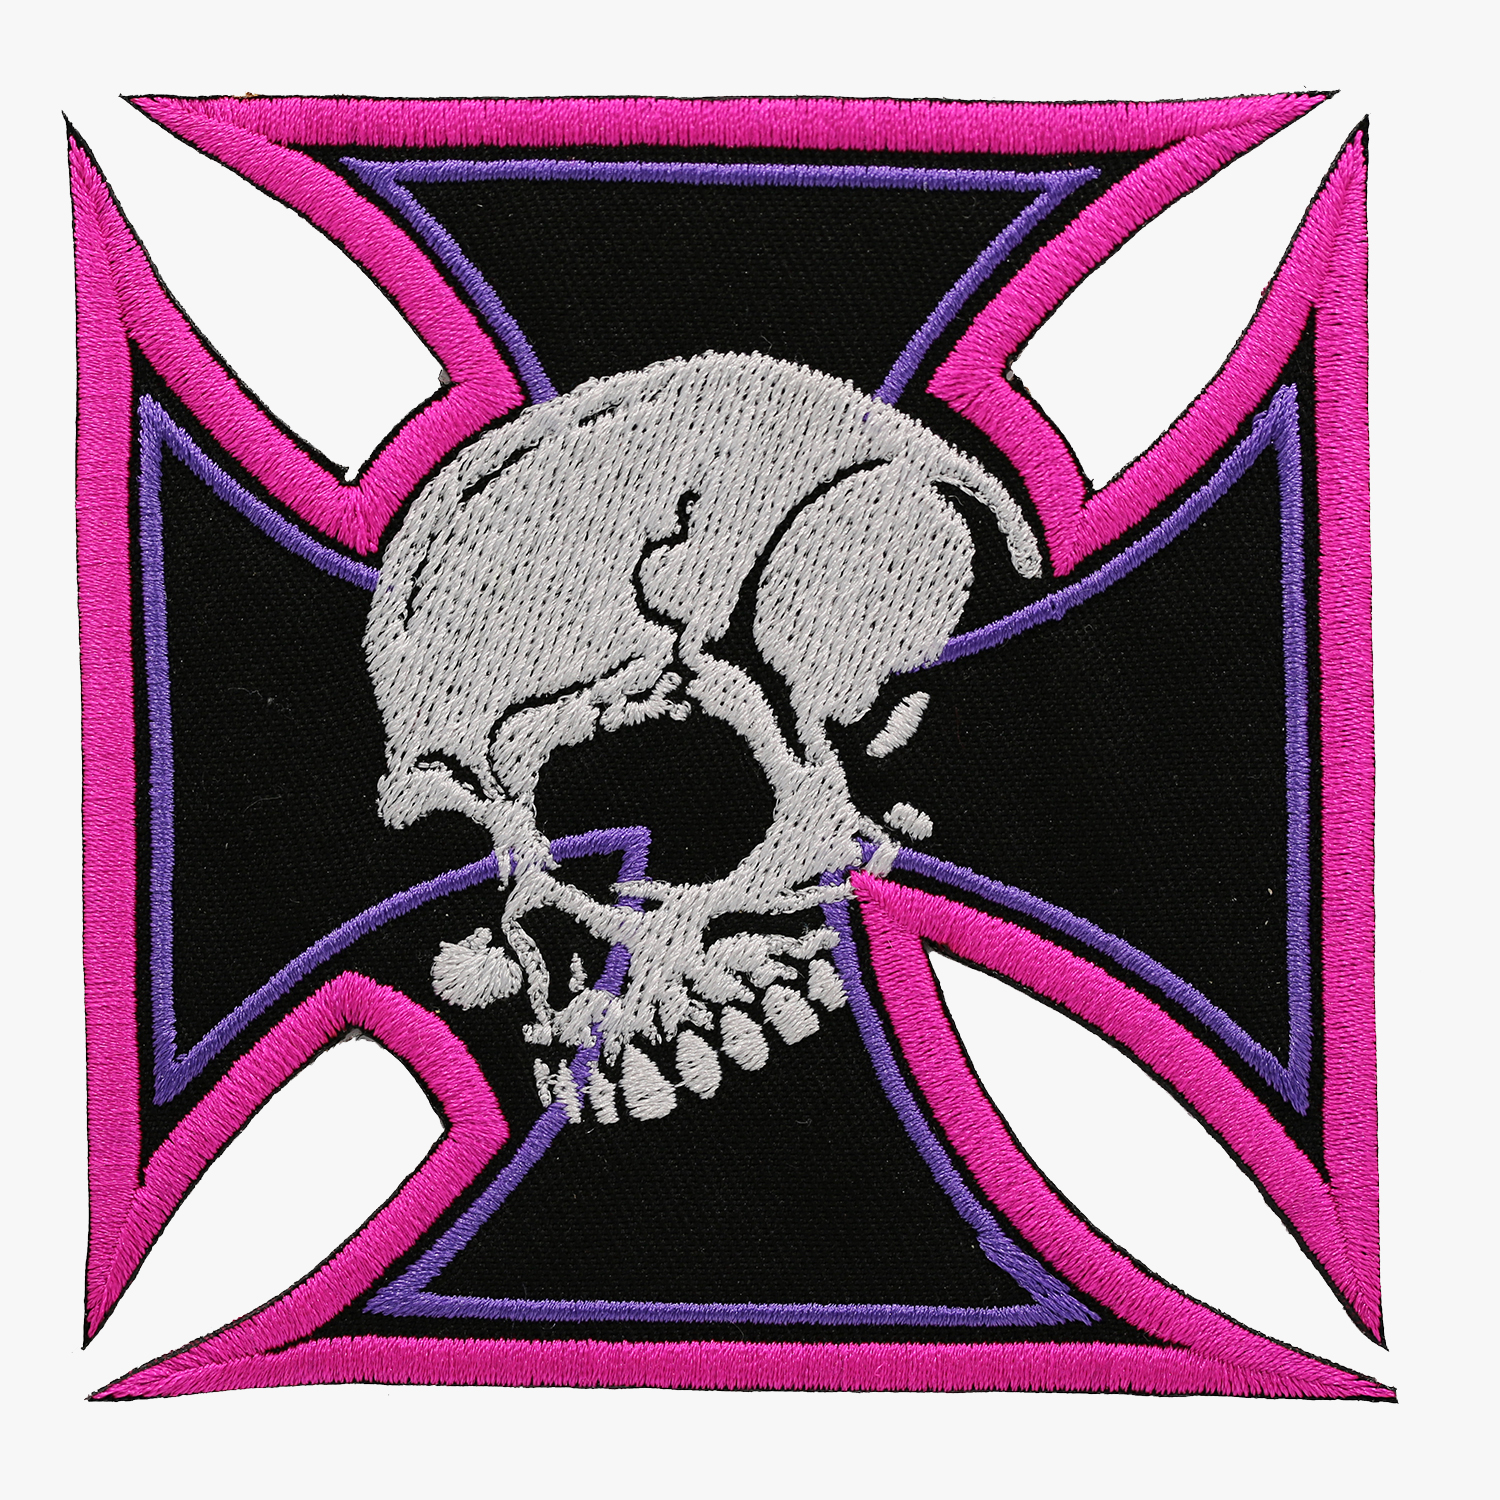 LADY IRON CROSS SKULL BIKER PATCH